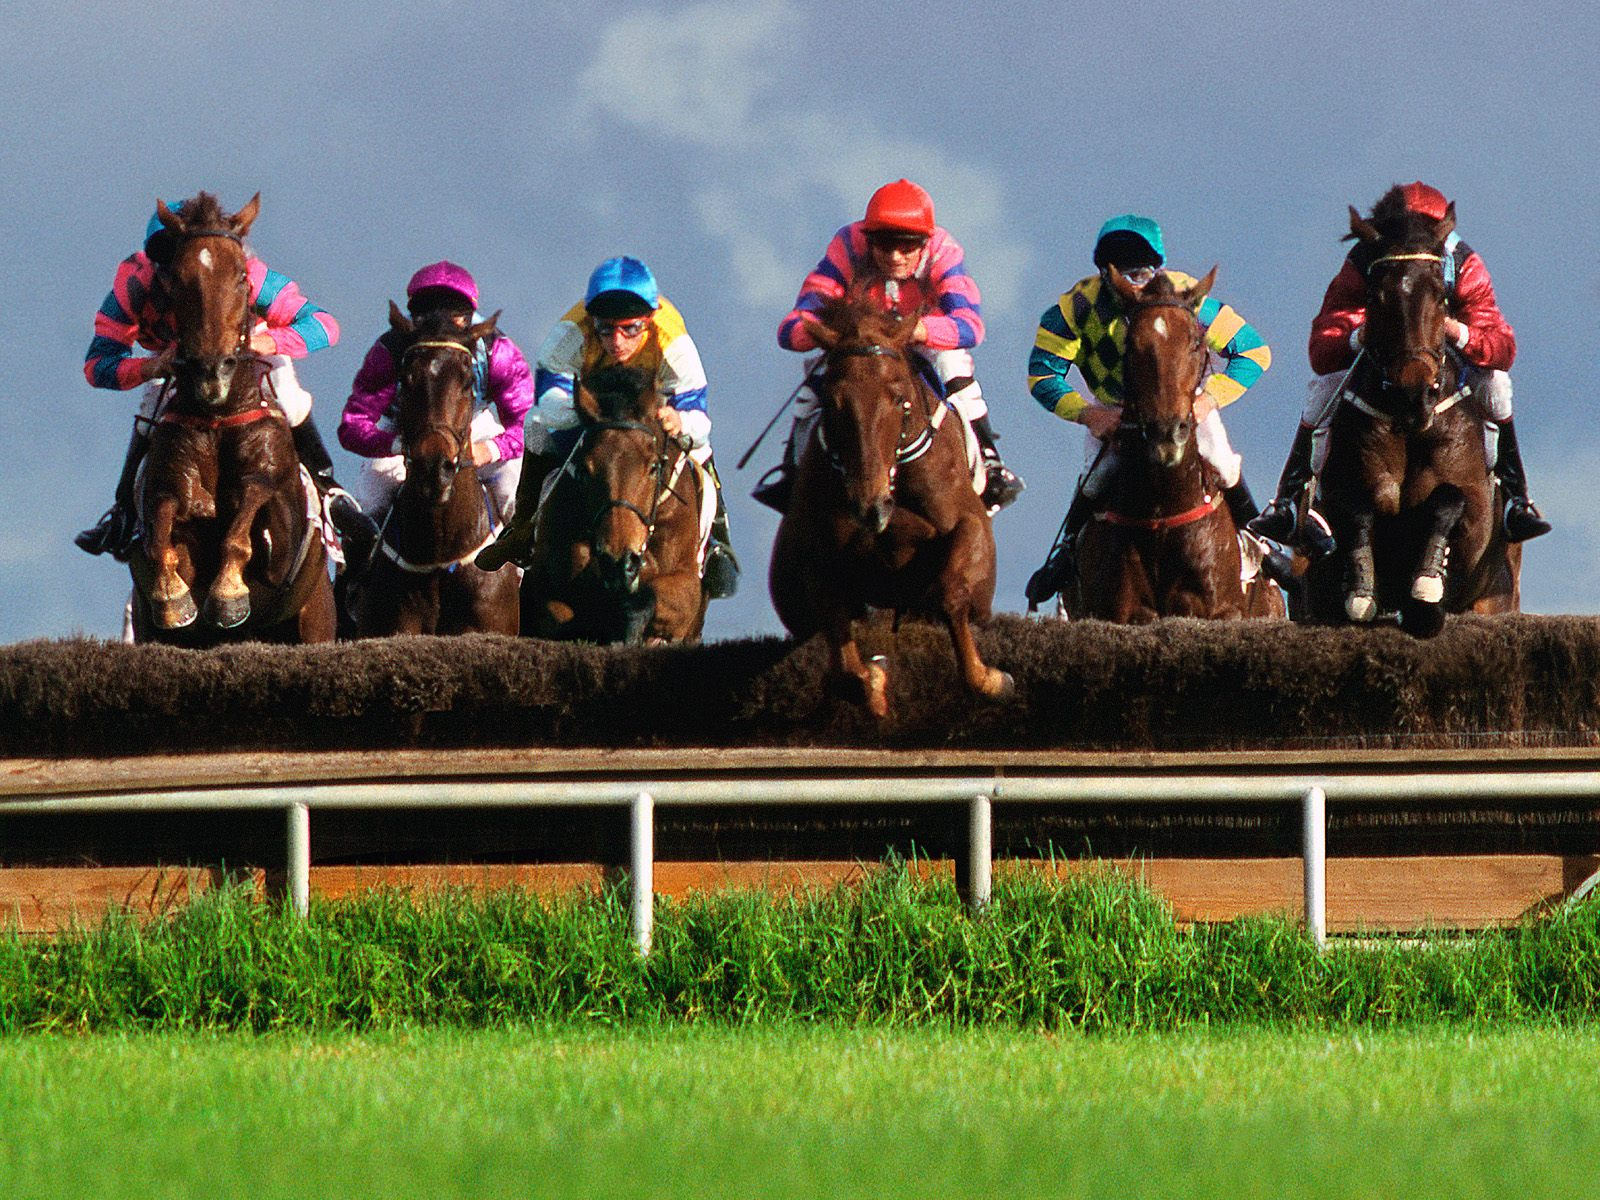 Pin horse racing gallery on pinterest for Steeple chase